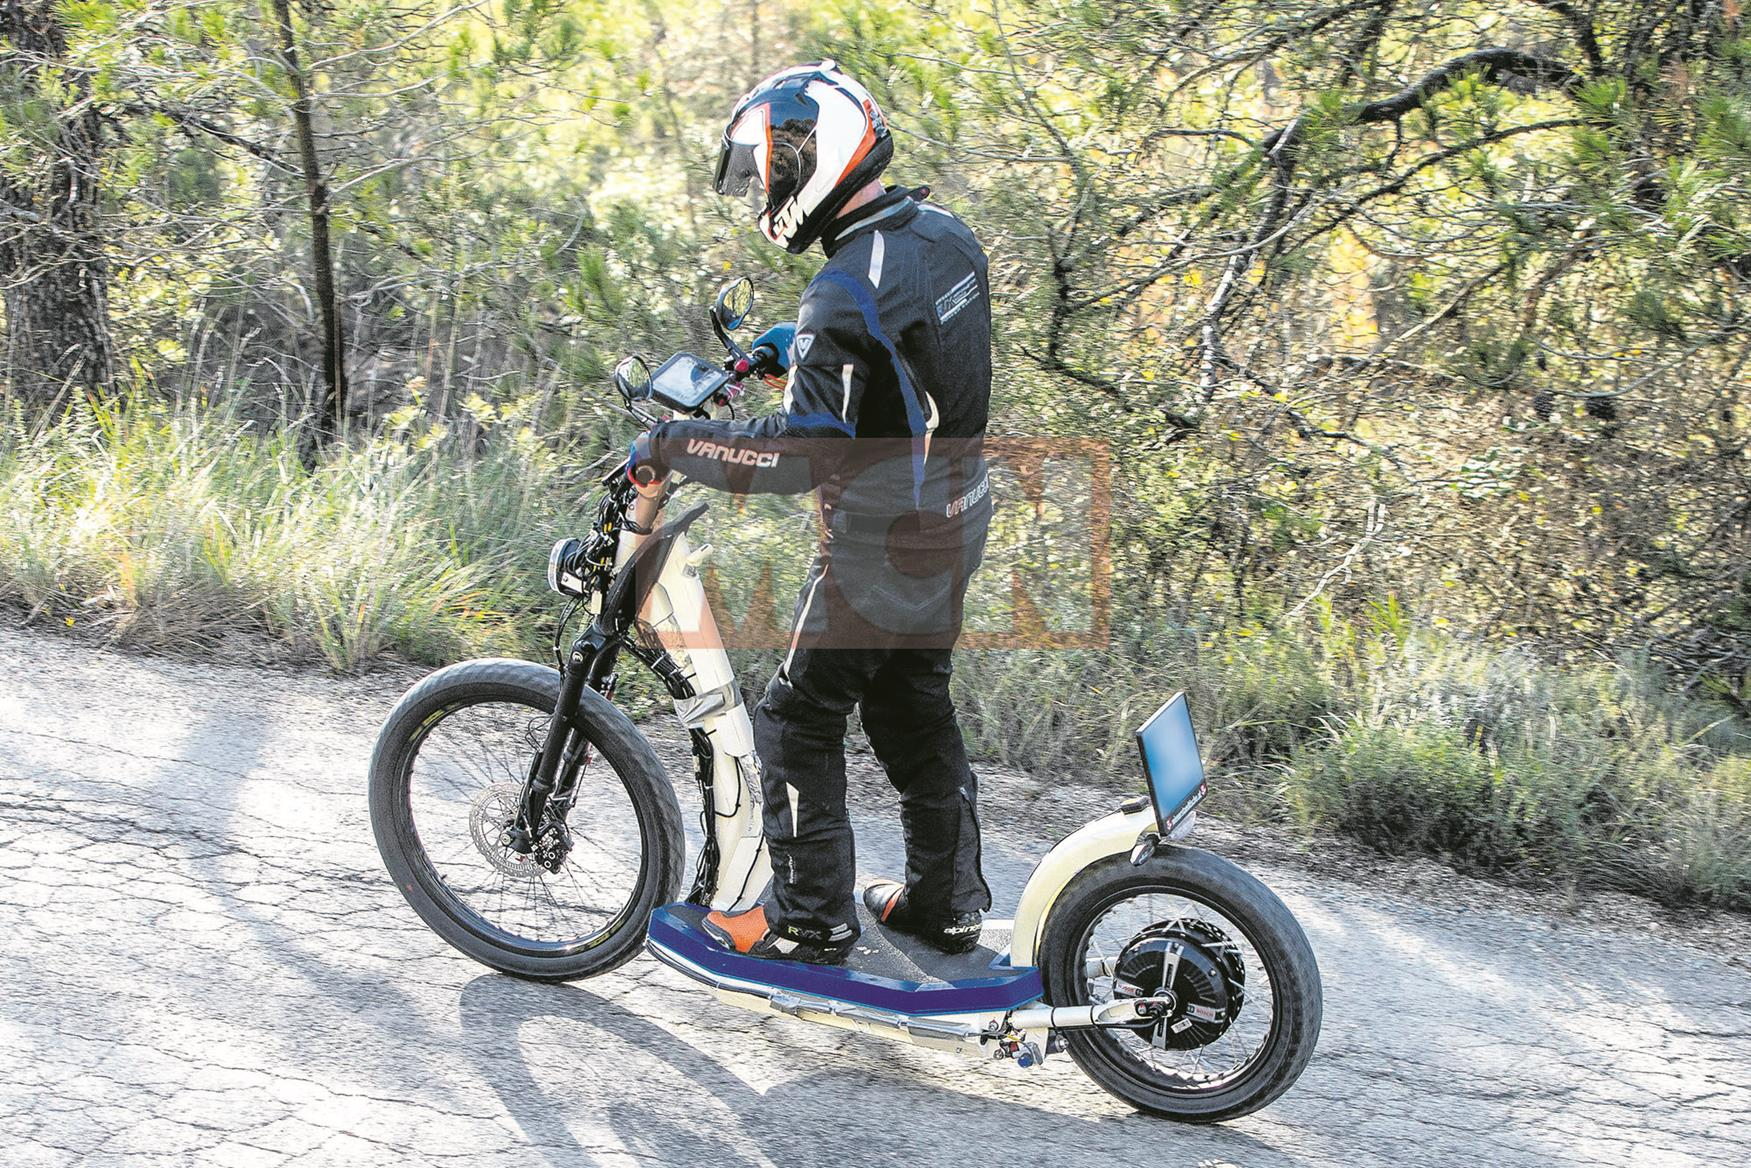 Ktm E Scooter Spy Shot